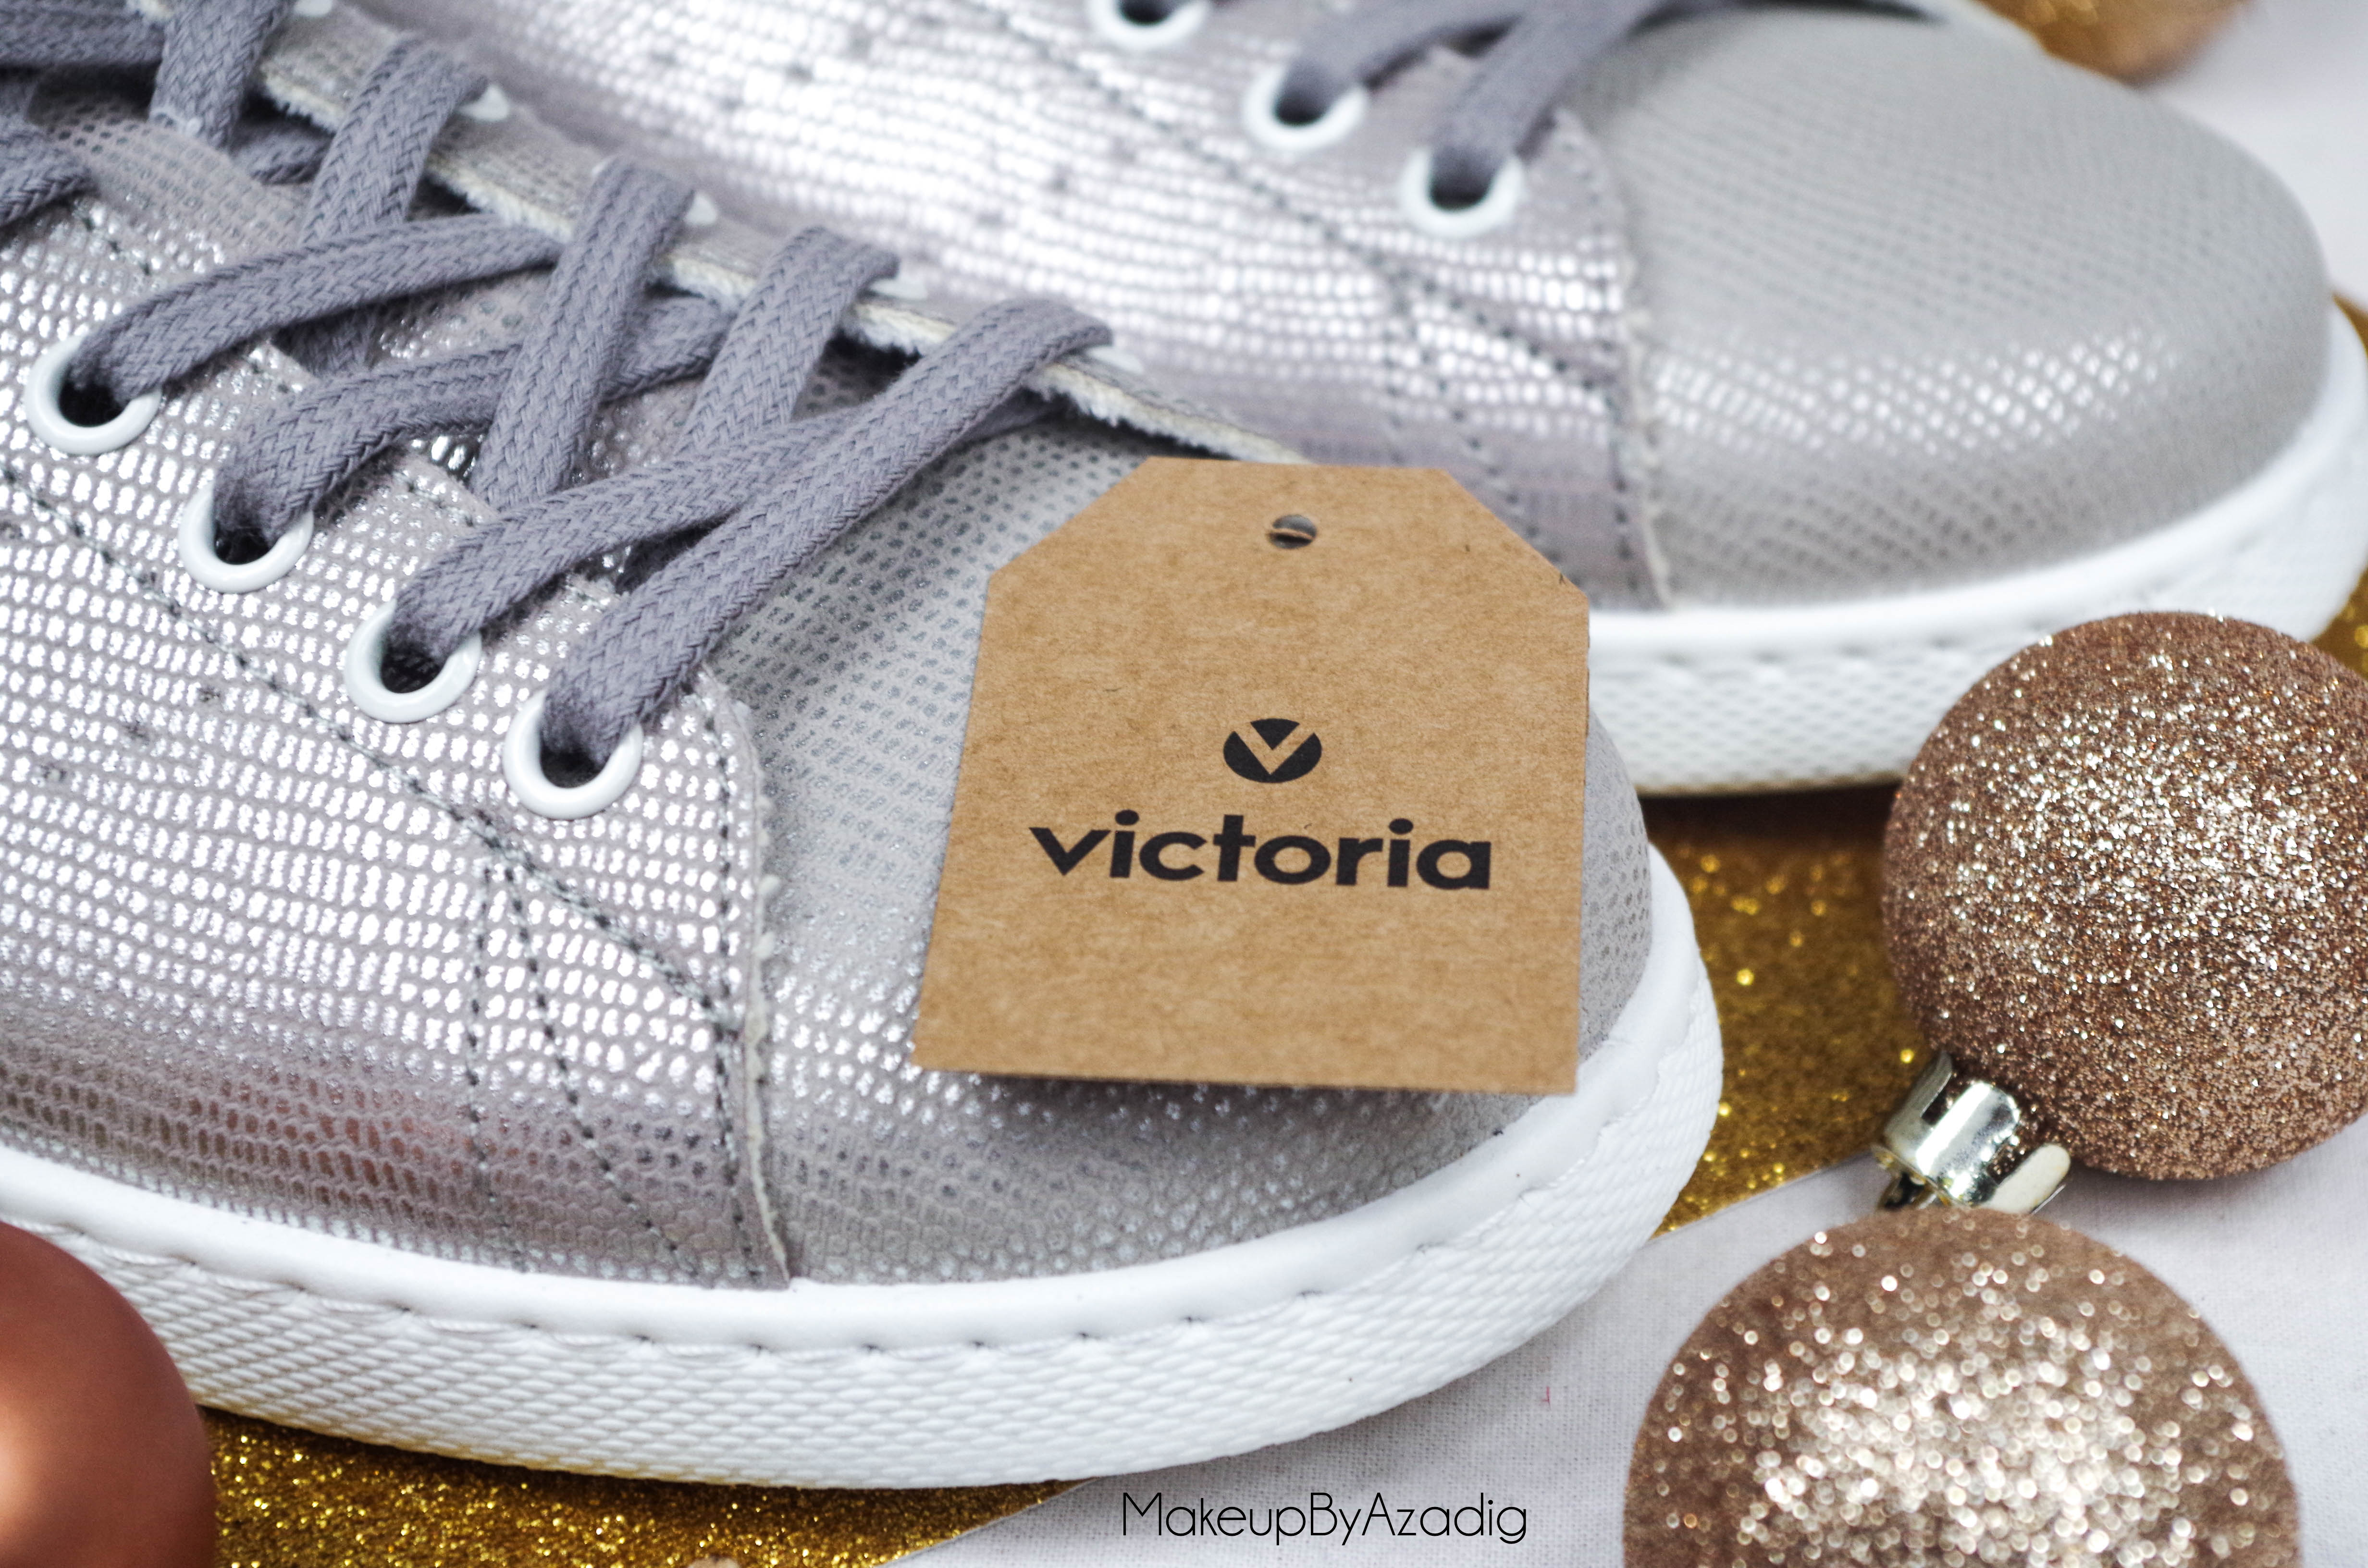 victoria-deportivo-basket-tejido-sneakers-usine-23-makeupbyazadig-troyes-paris-baskets-metallisees-promotion